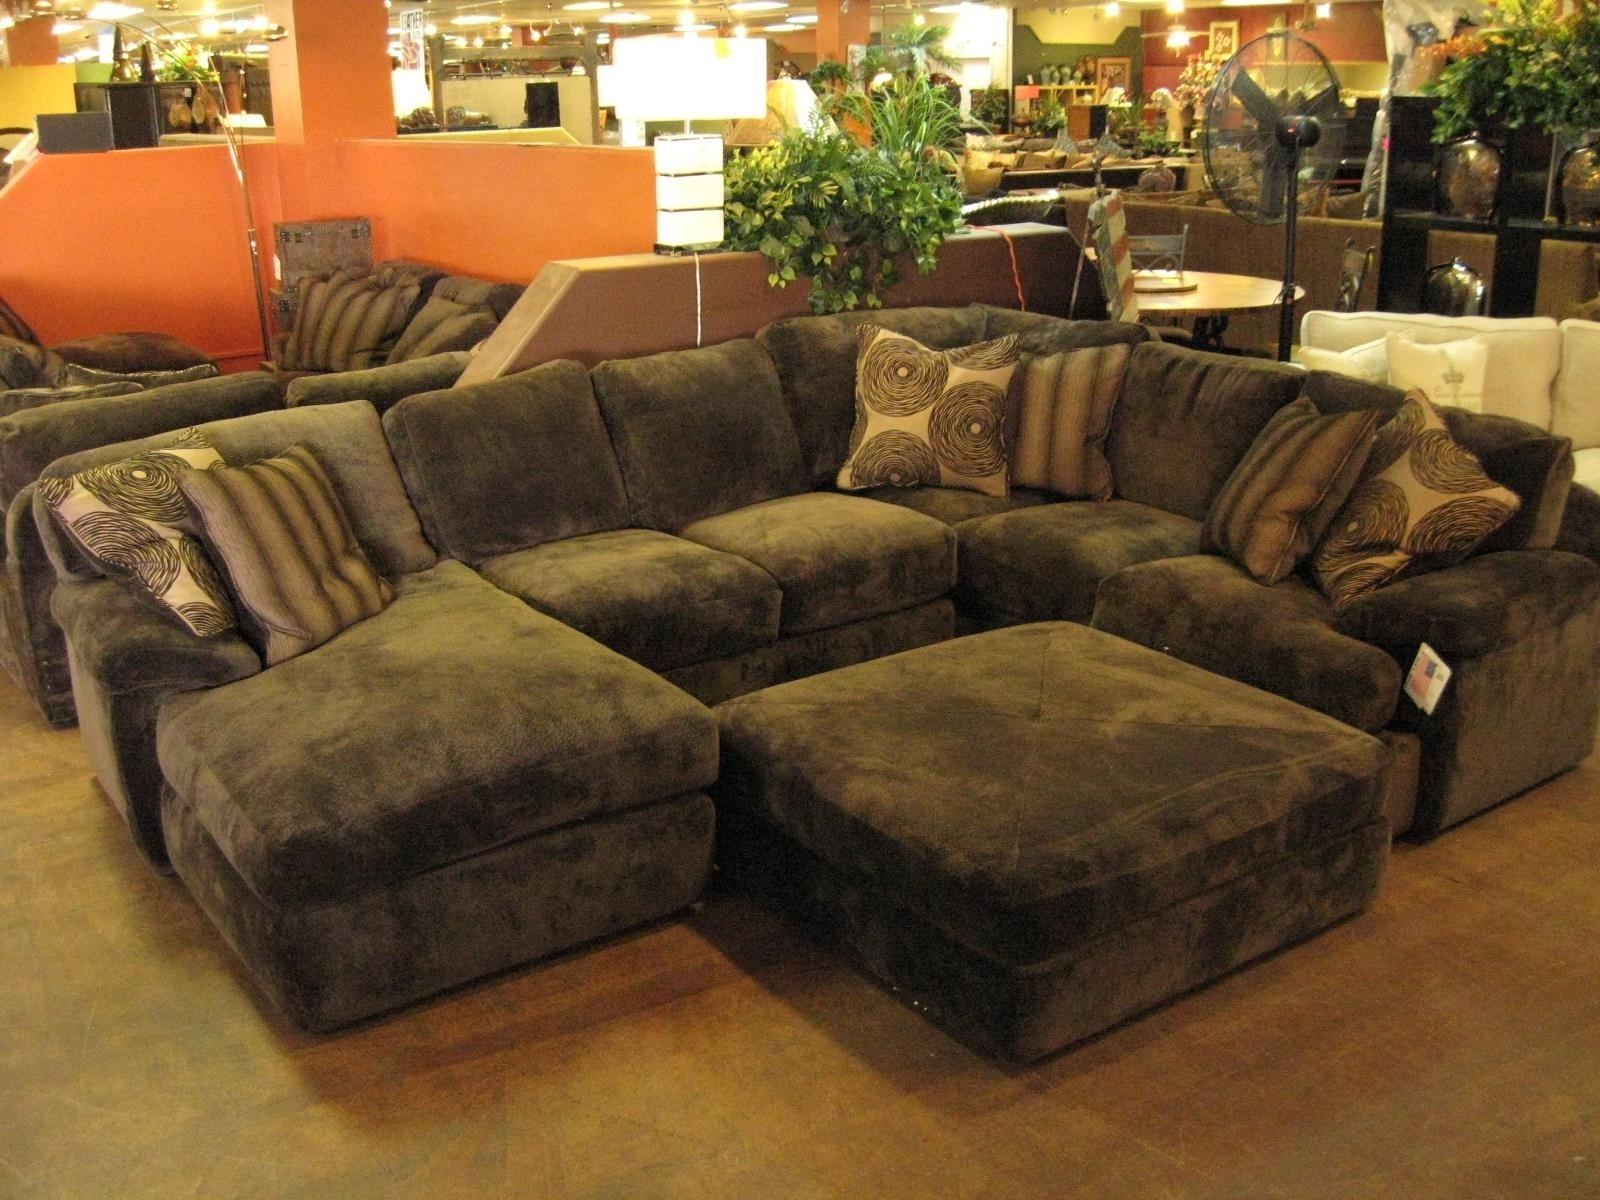 Popular Long Sectional Sofas With Chaise In Sofa : Large Sectional Sofa With Chaise Extra Large Sectional Sofa (View 16 of 20)